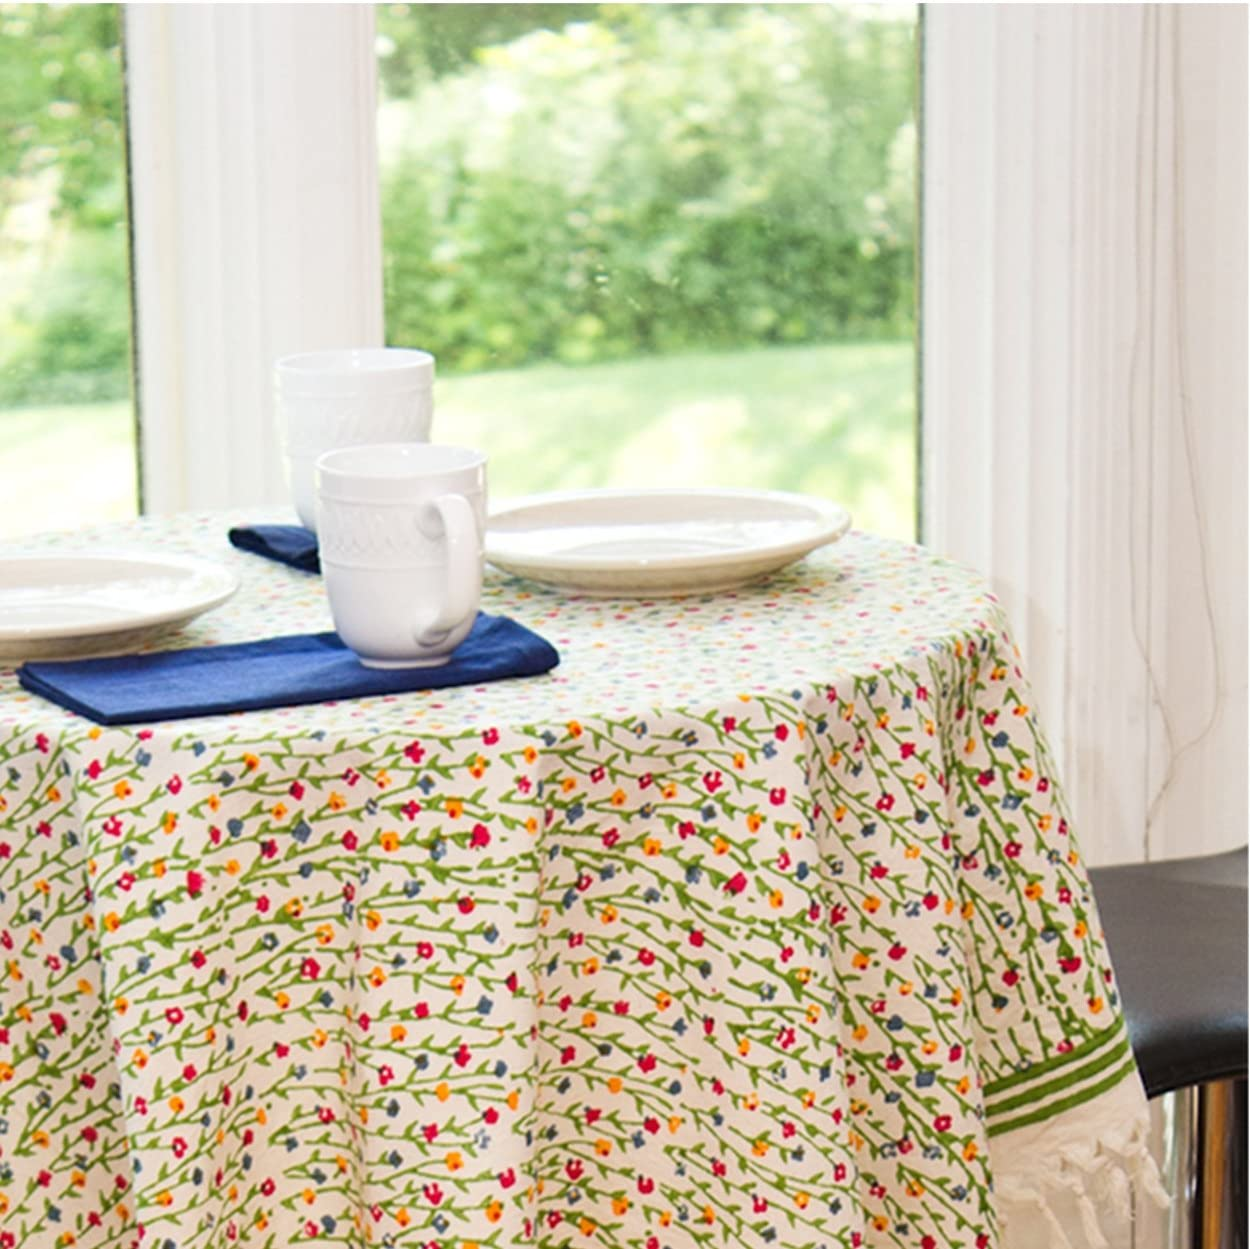 Set of 4 Psychedelic Cloth Napkins Flower Power Cotton Fabric Lunch Box Size Reversible Eco Friendly Table Linens